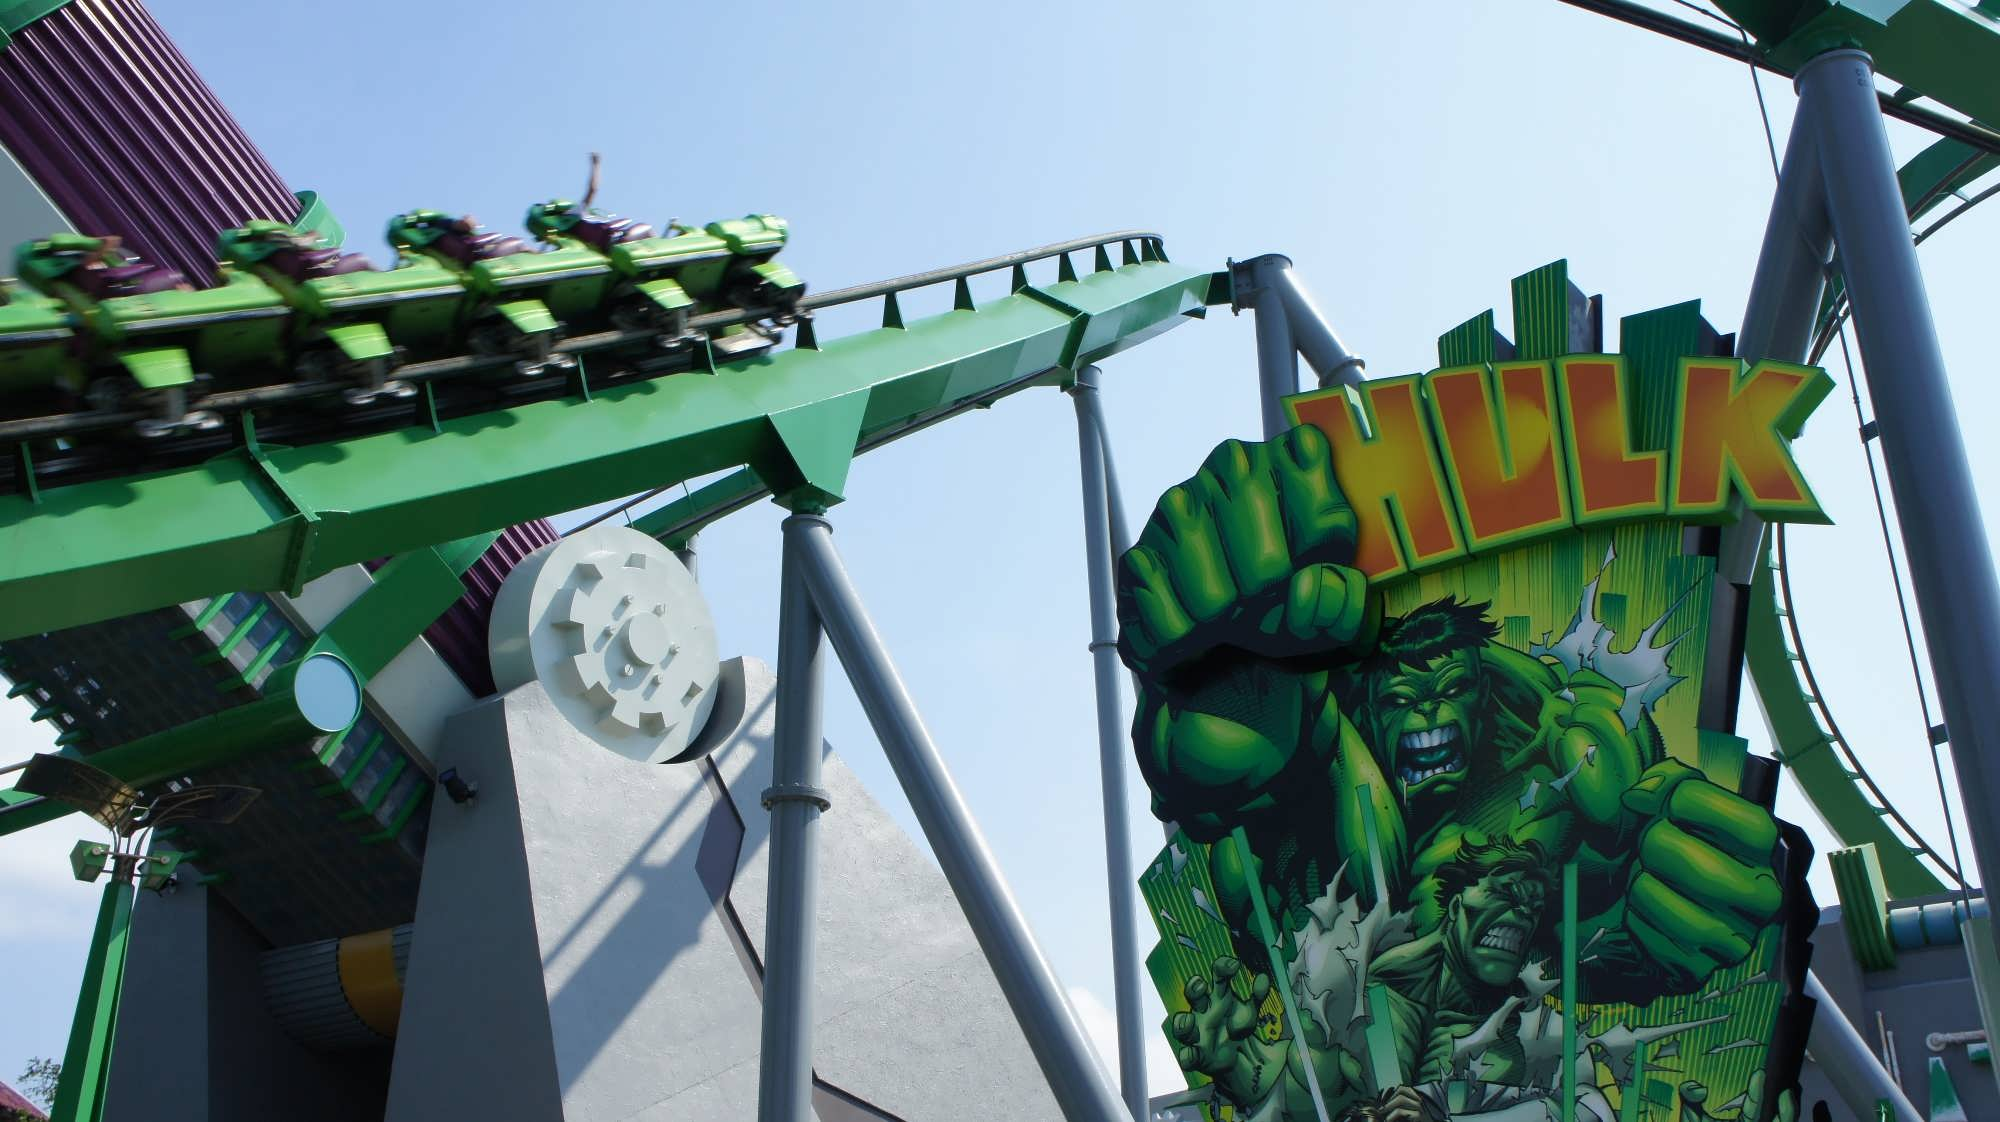 Incredible Hulk Coaster overhaul confirmed